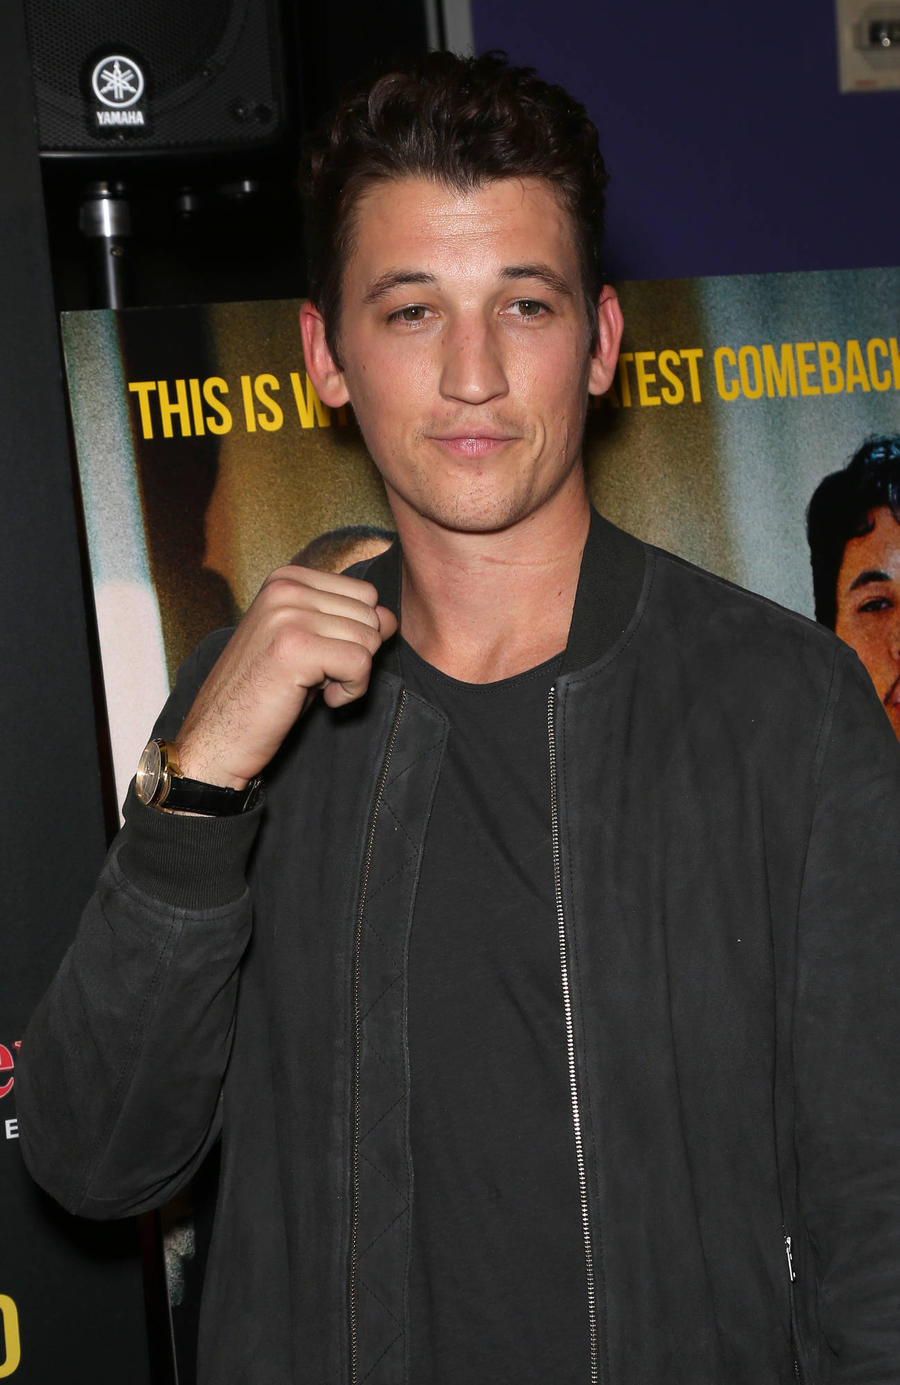 Miles Teller Is Ok After Bad Car Crash